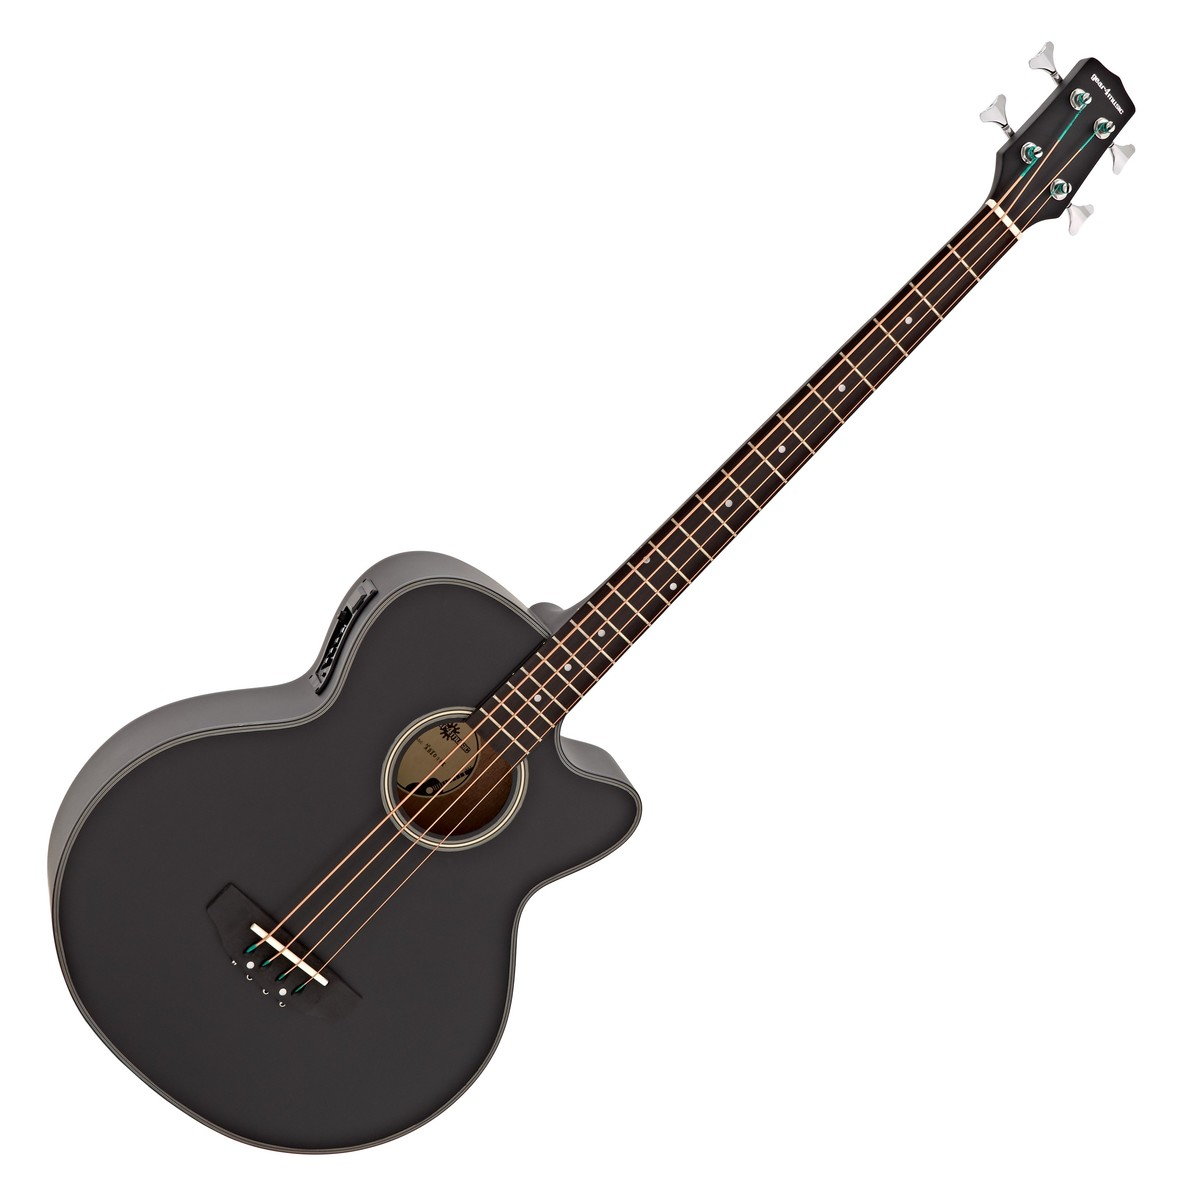 electro acoustic bass guitar by gear4music black b stock at gear4music. Black Bedroom Furniture Sets. Home Design Ideas